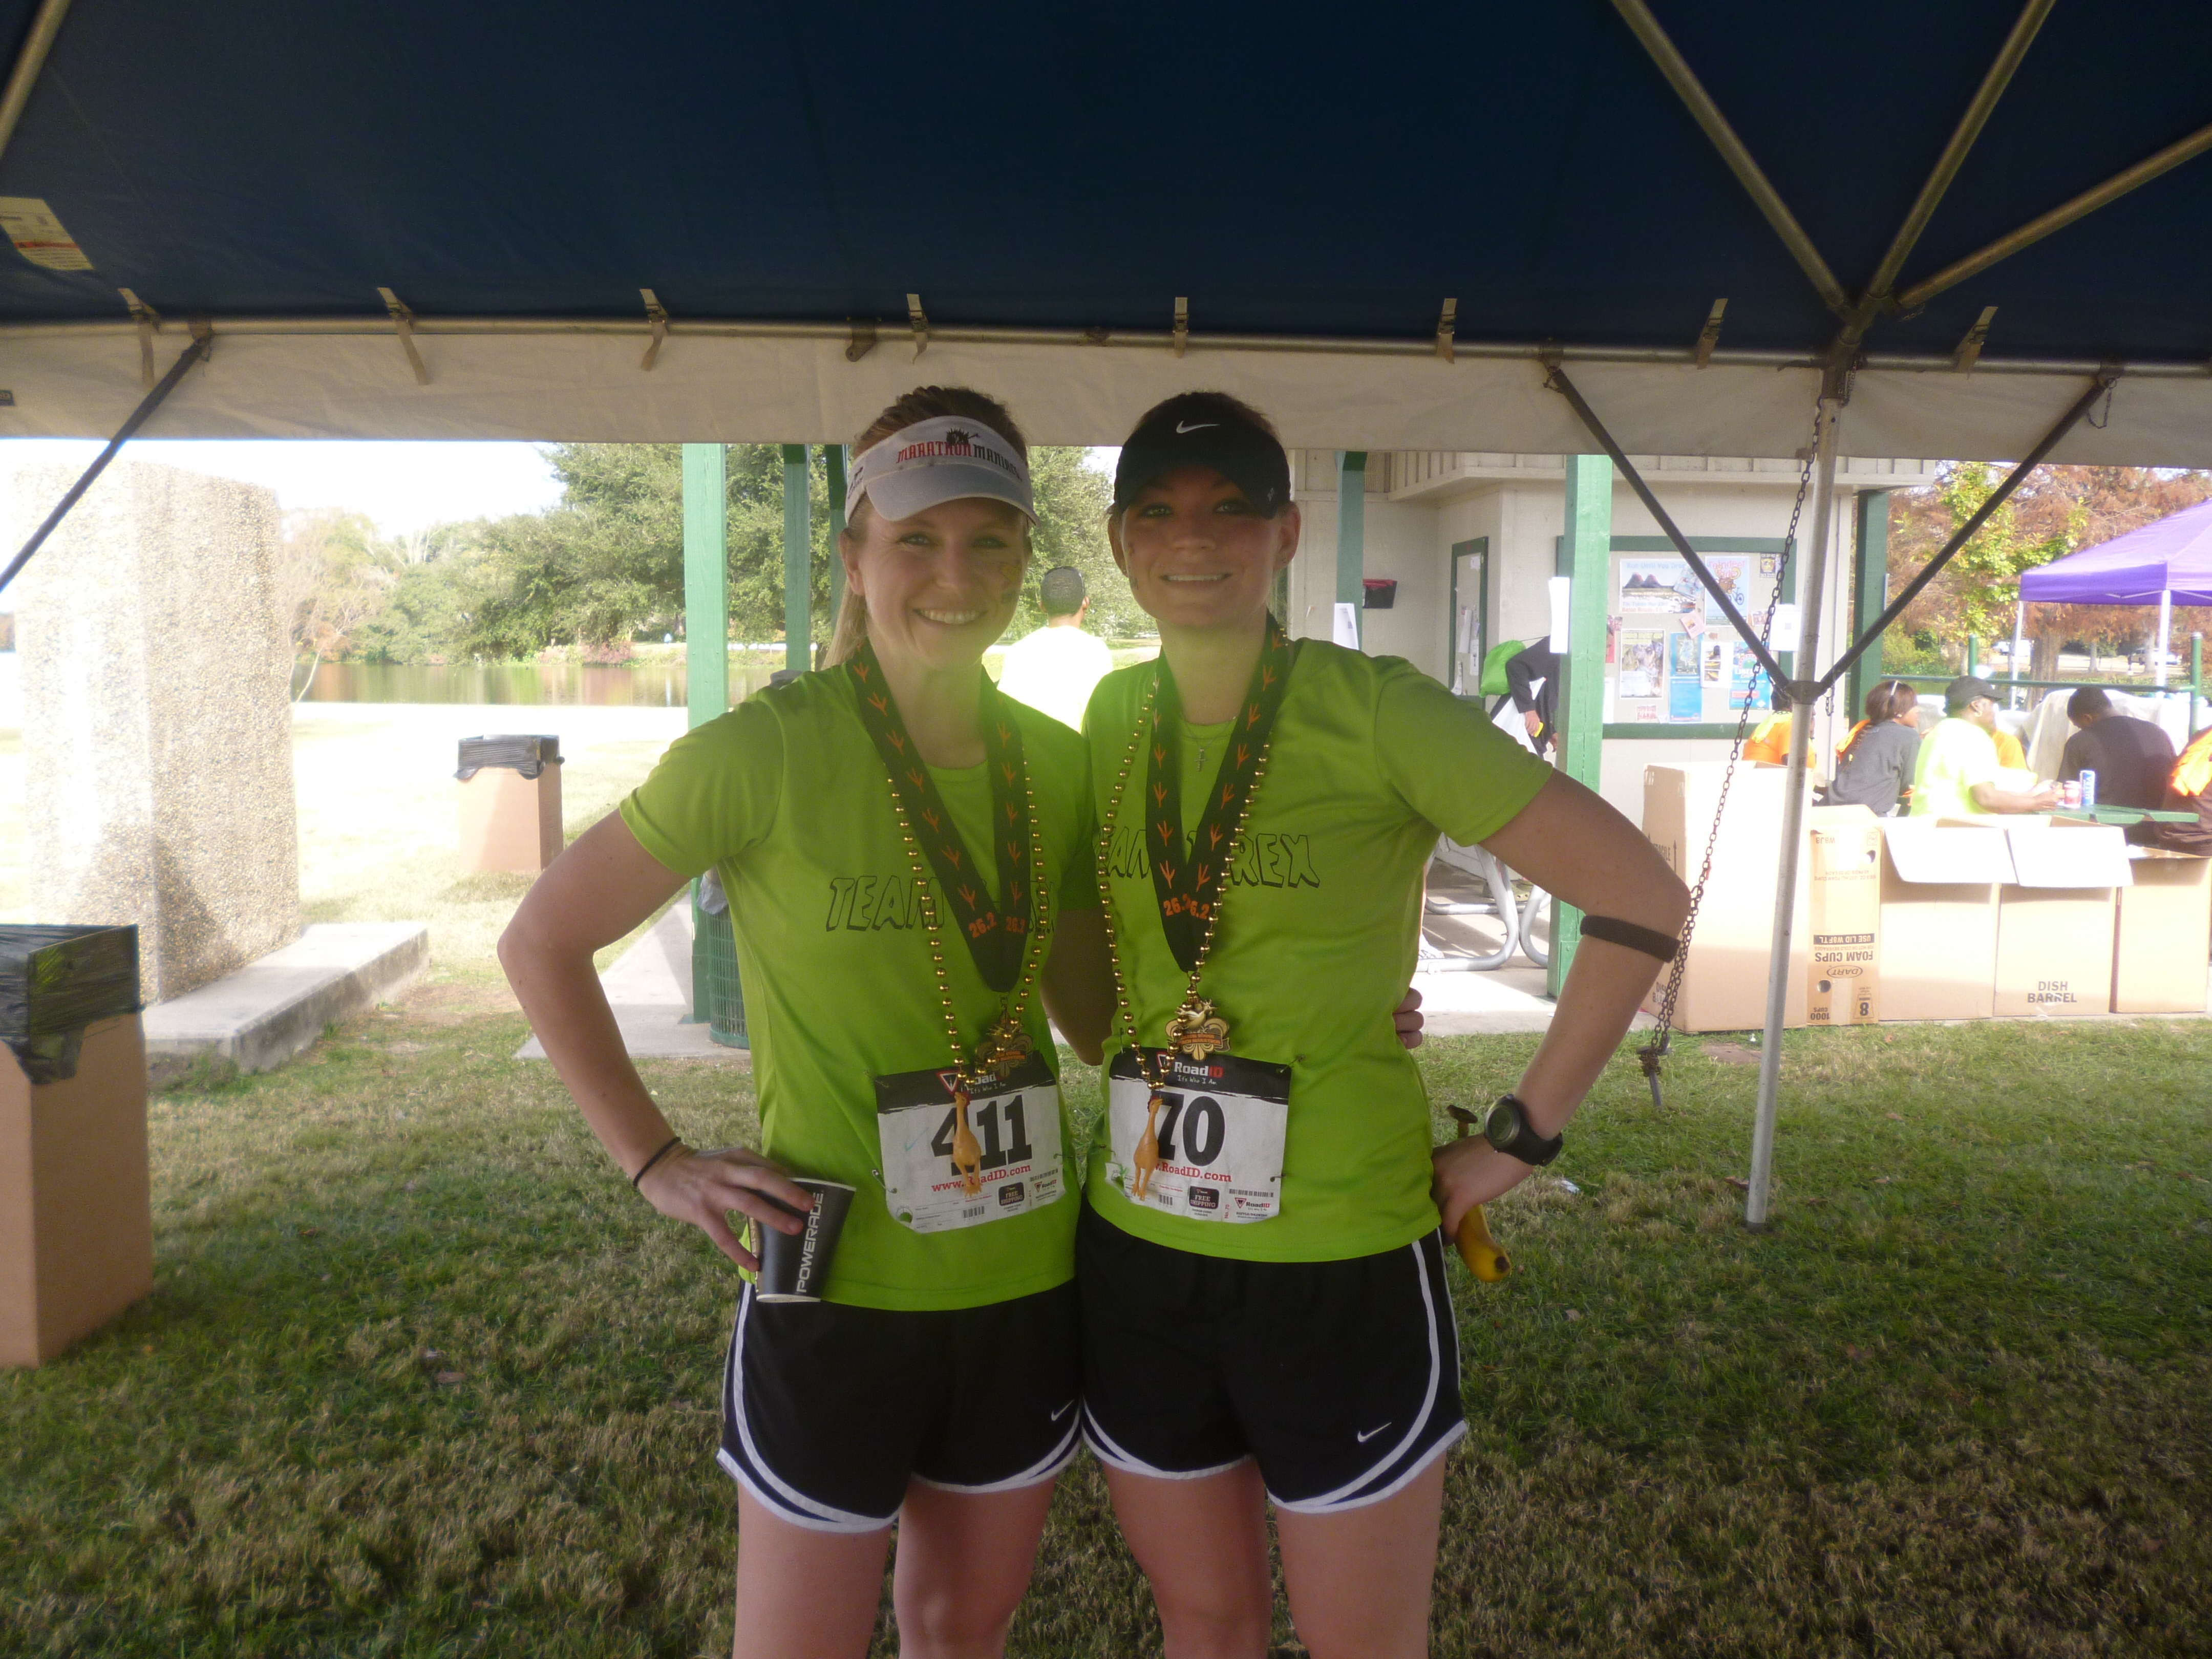 Amanda demanded that there be a post race photo.